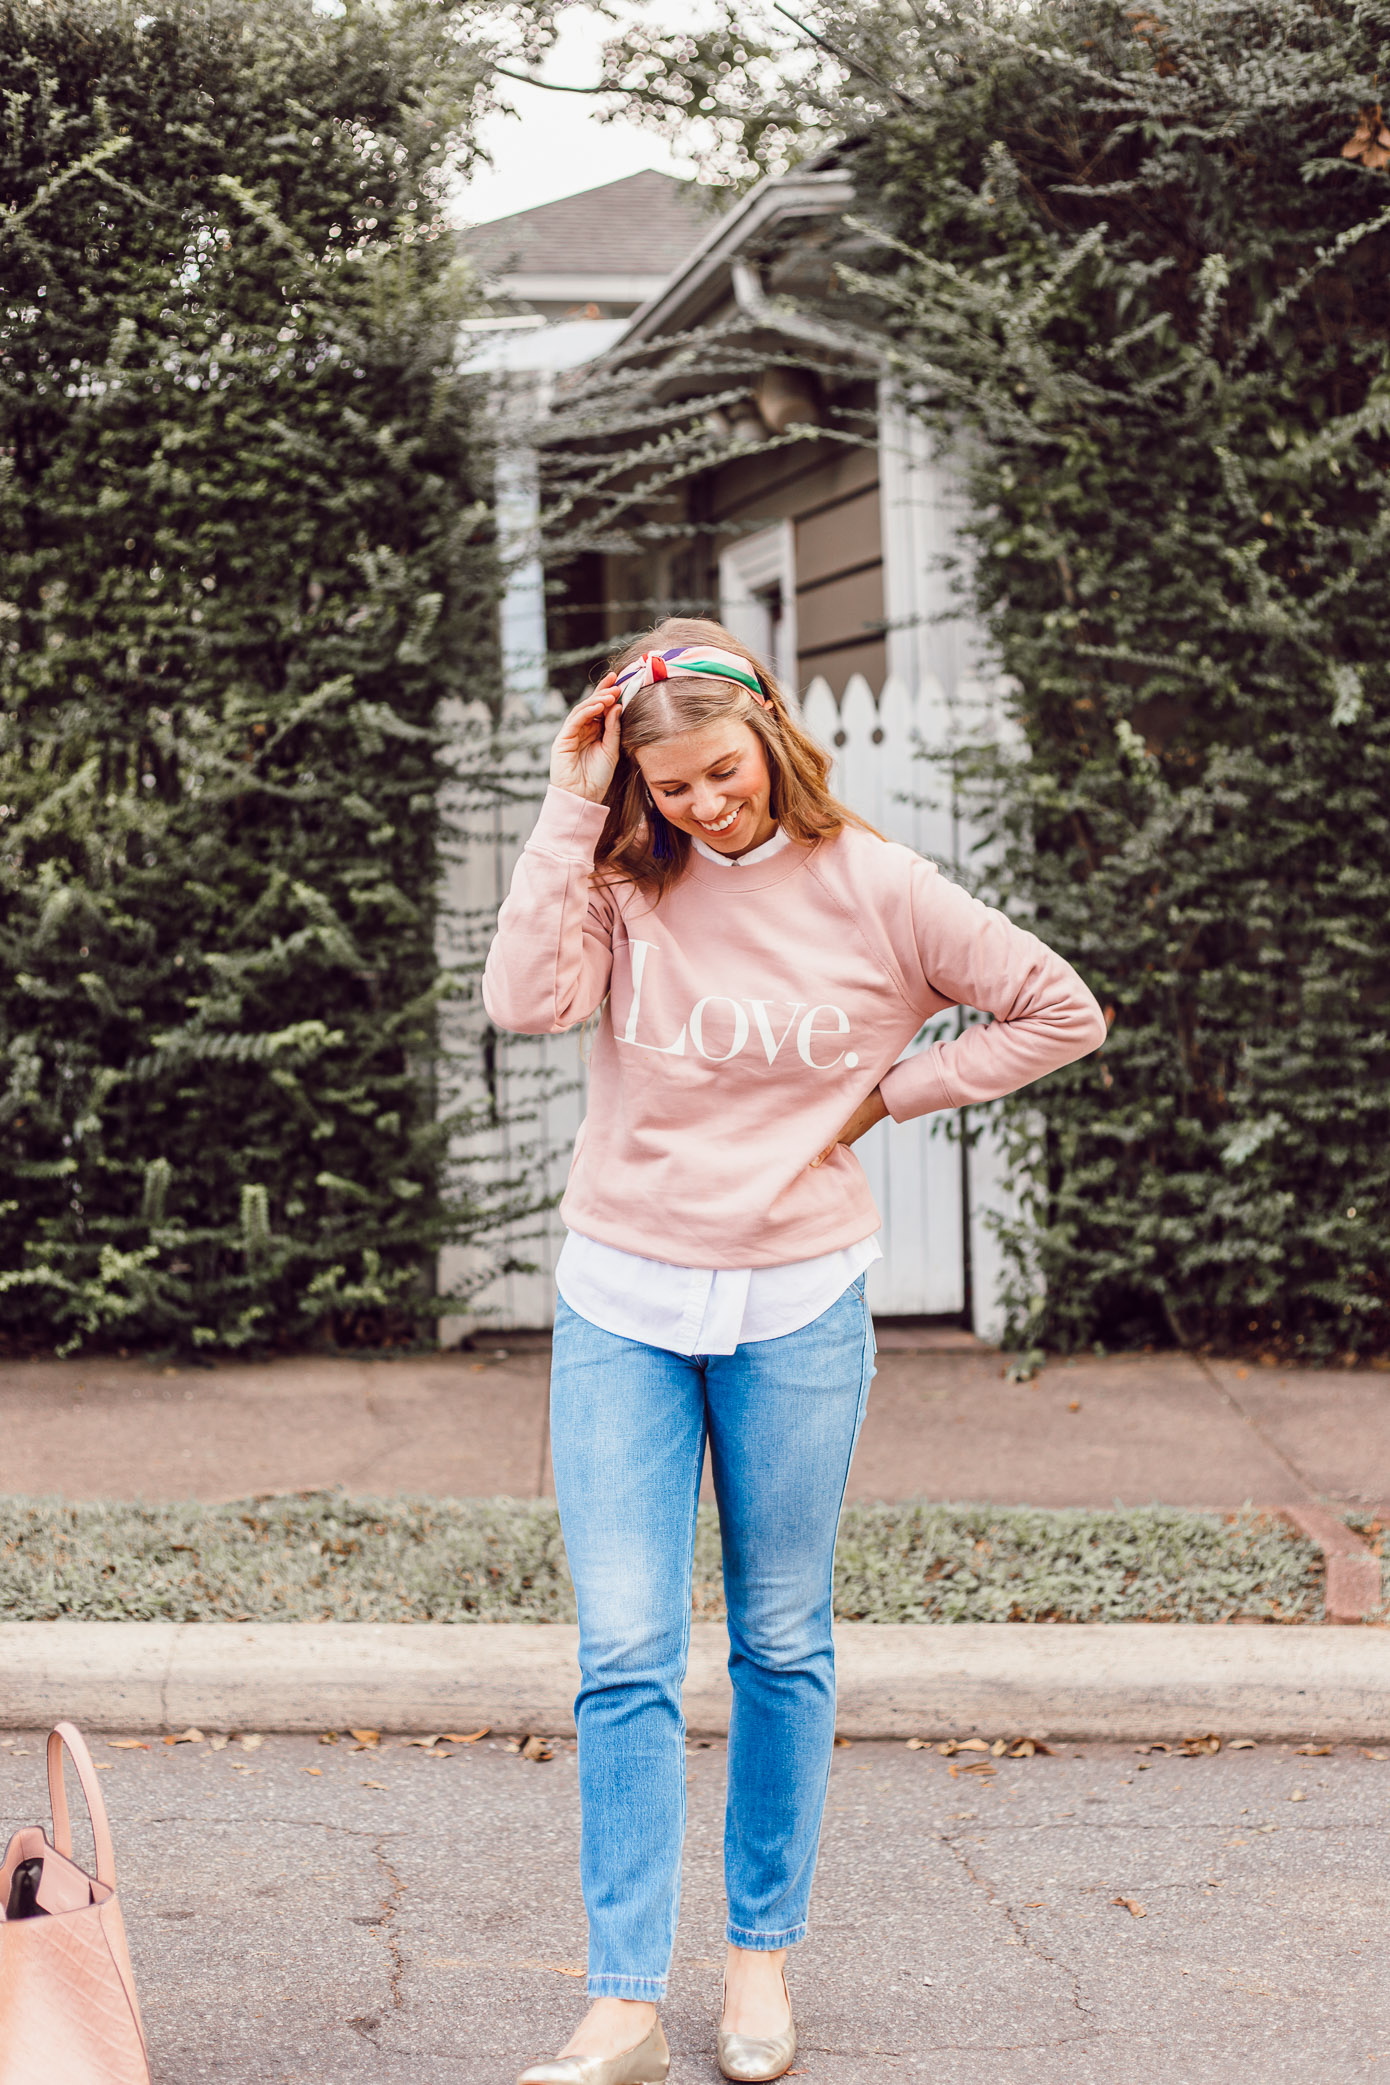 J.Crew Love Graphic Sweatshirt | How to Style a Sweatshirt for a Feminine Look featured on Louella Reese